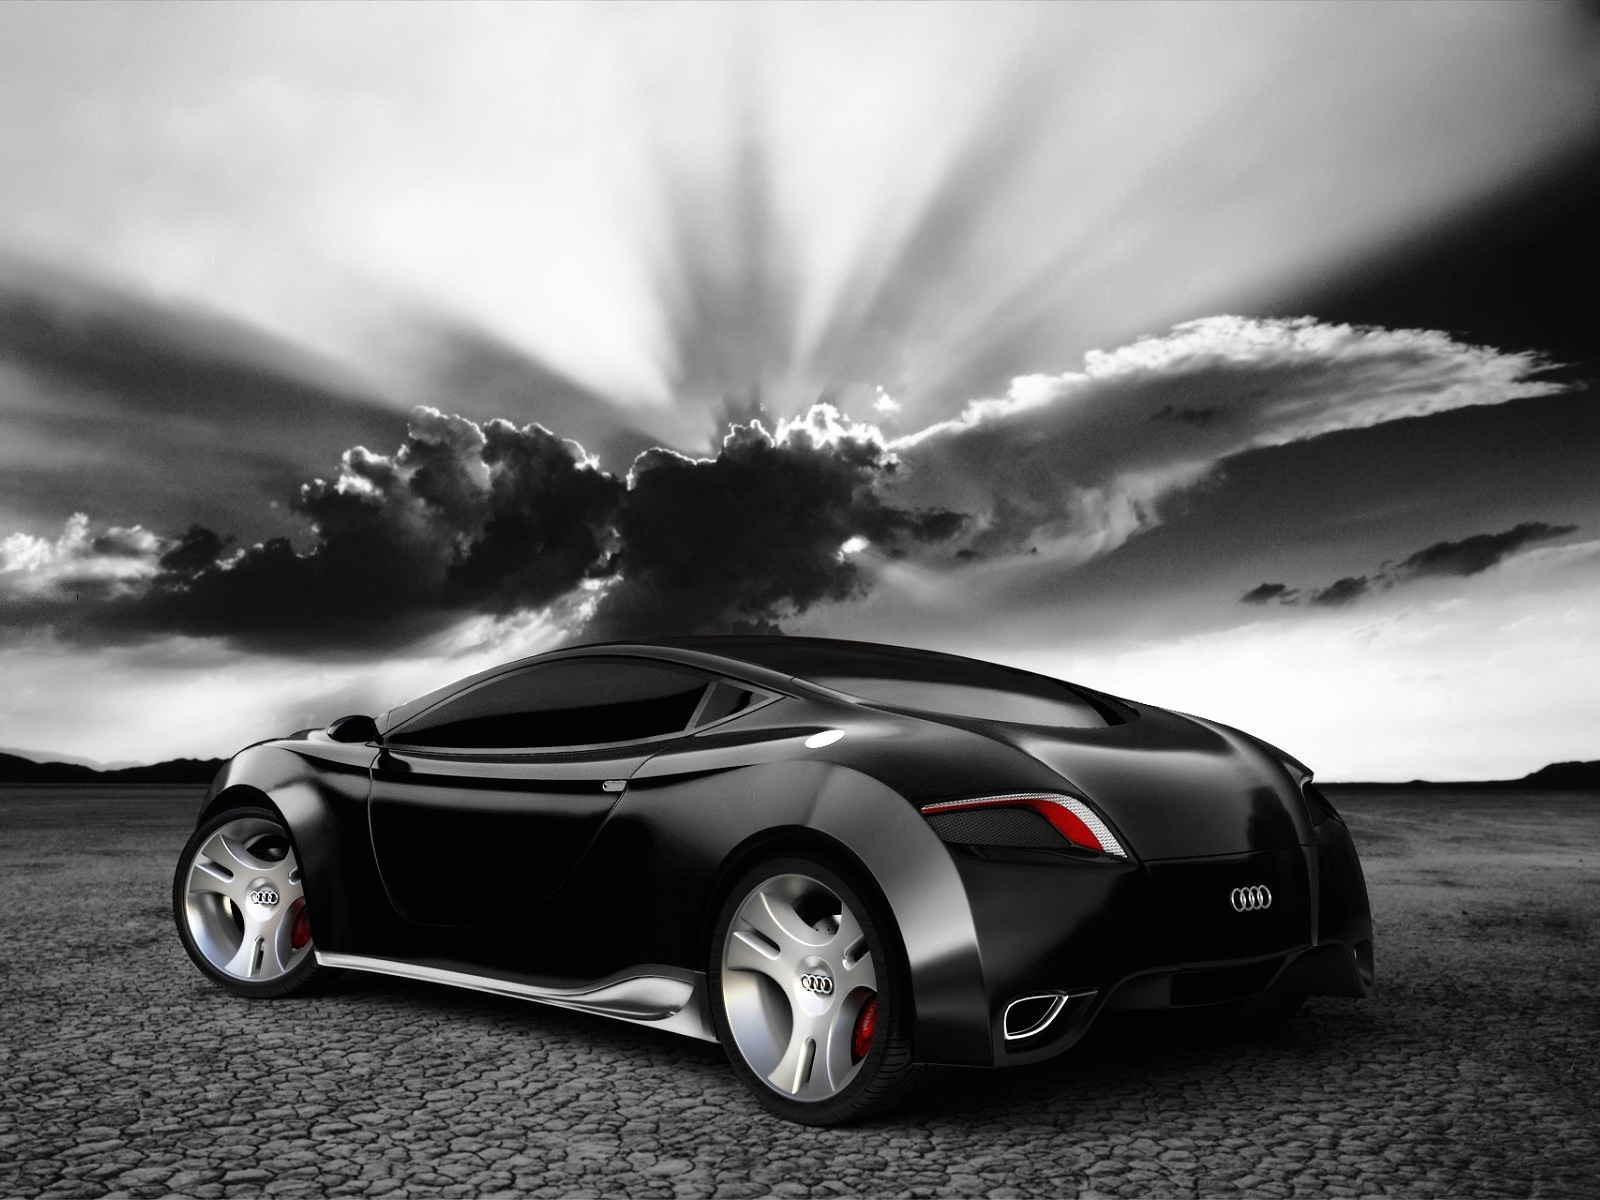 Amazing car wallpapers hd